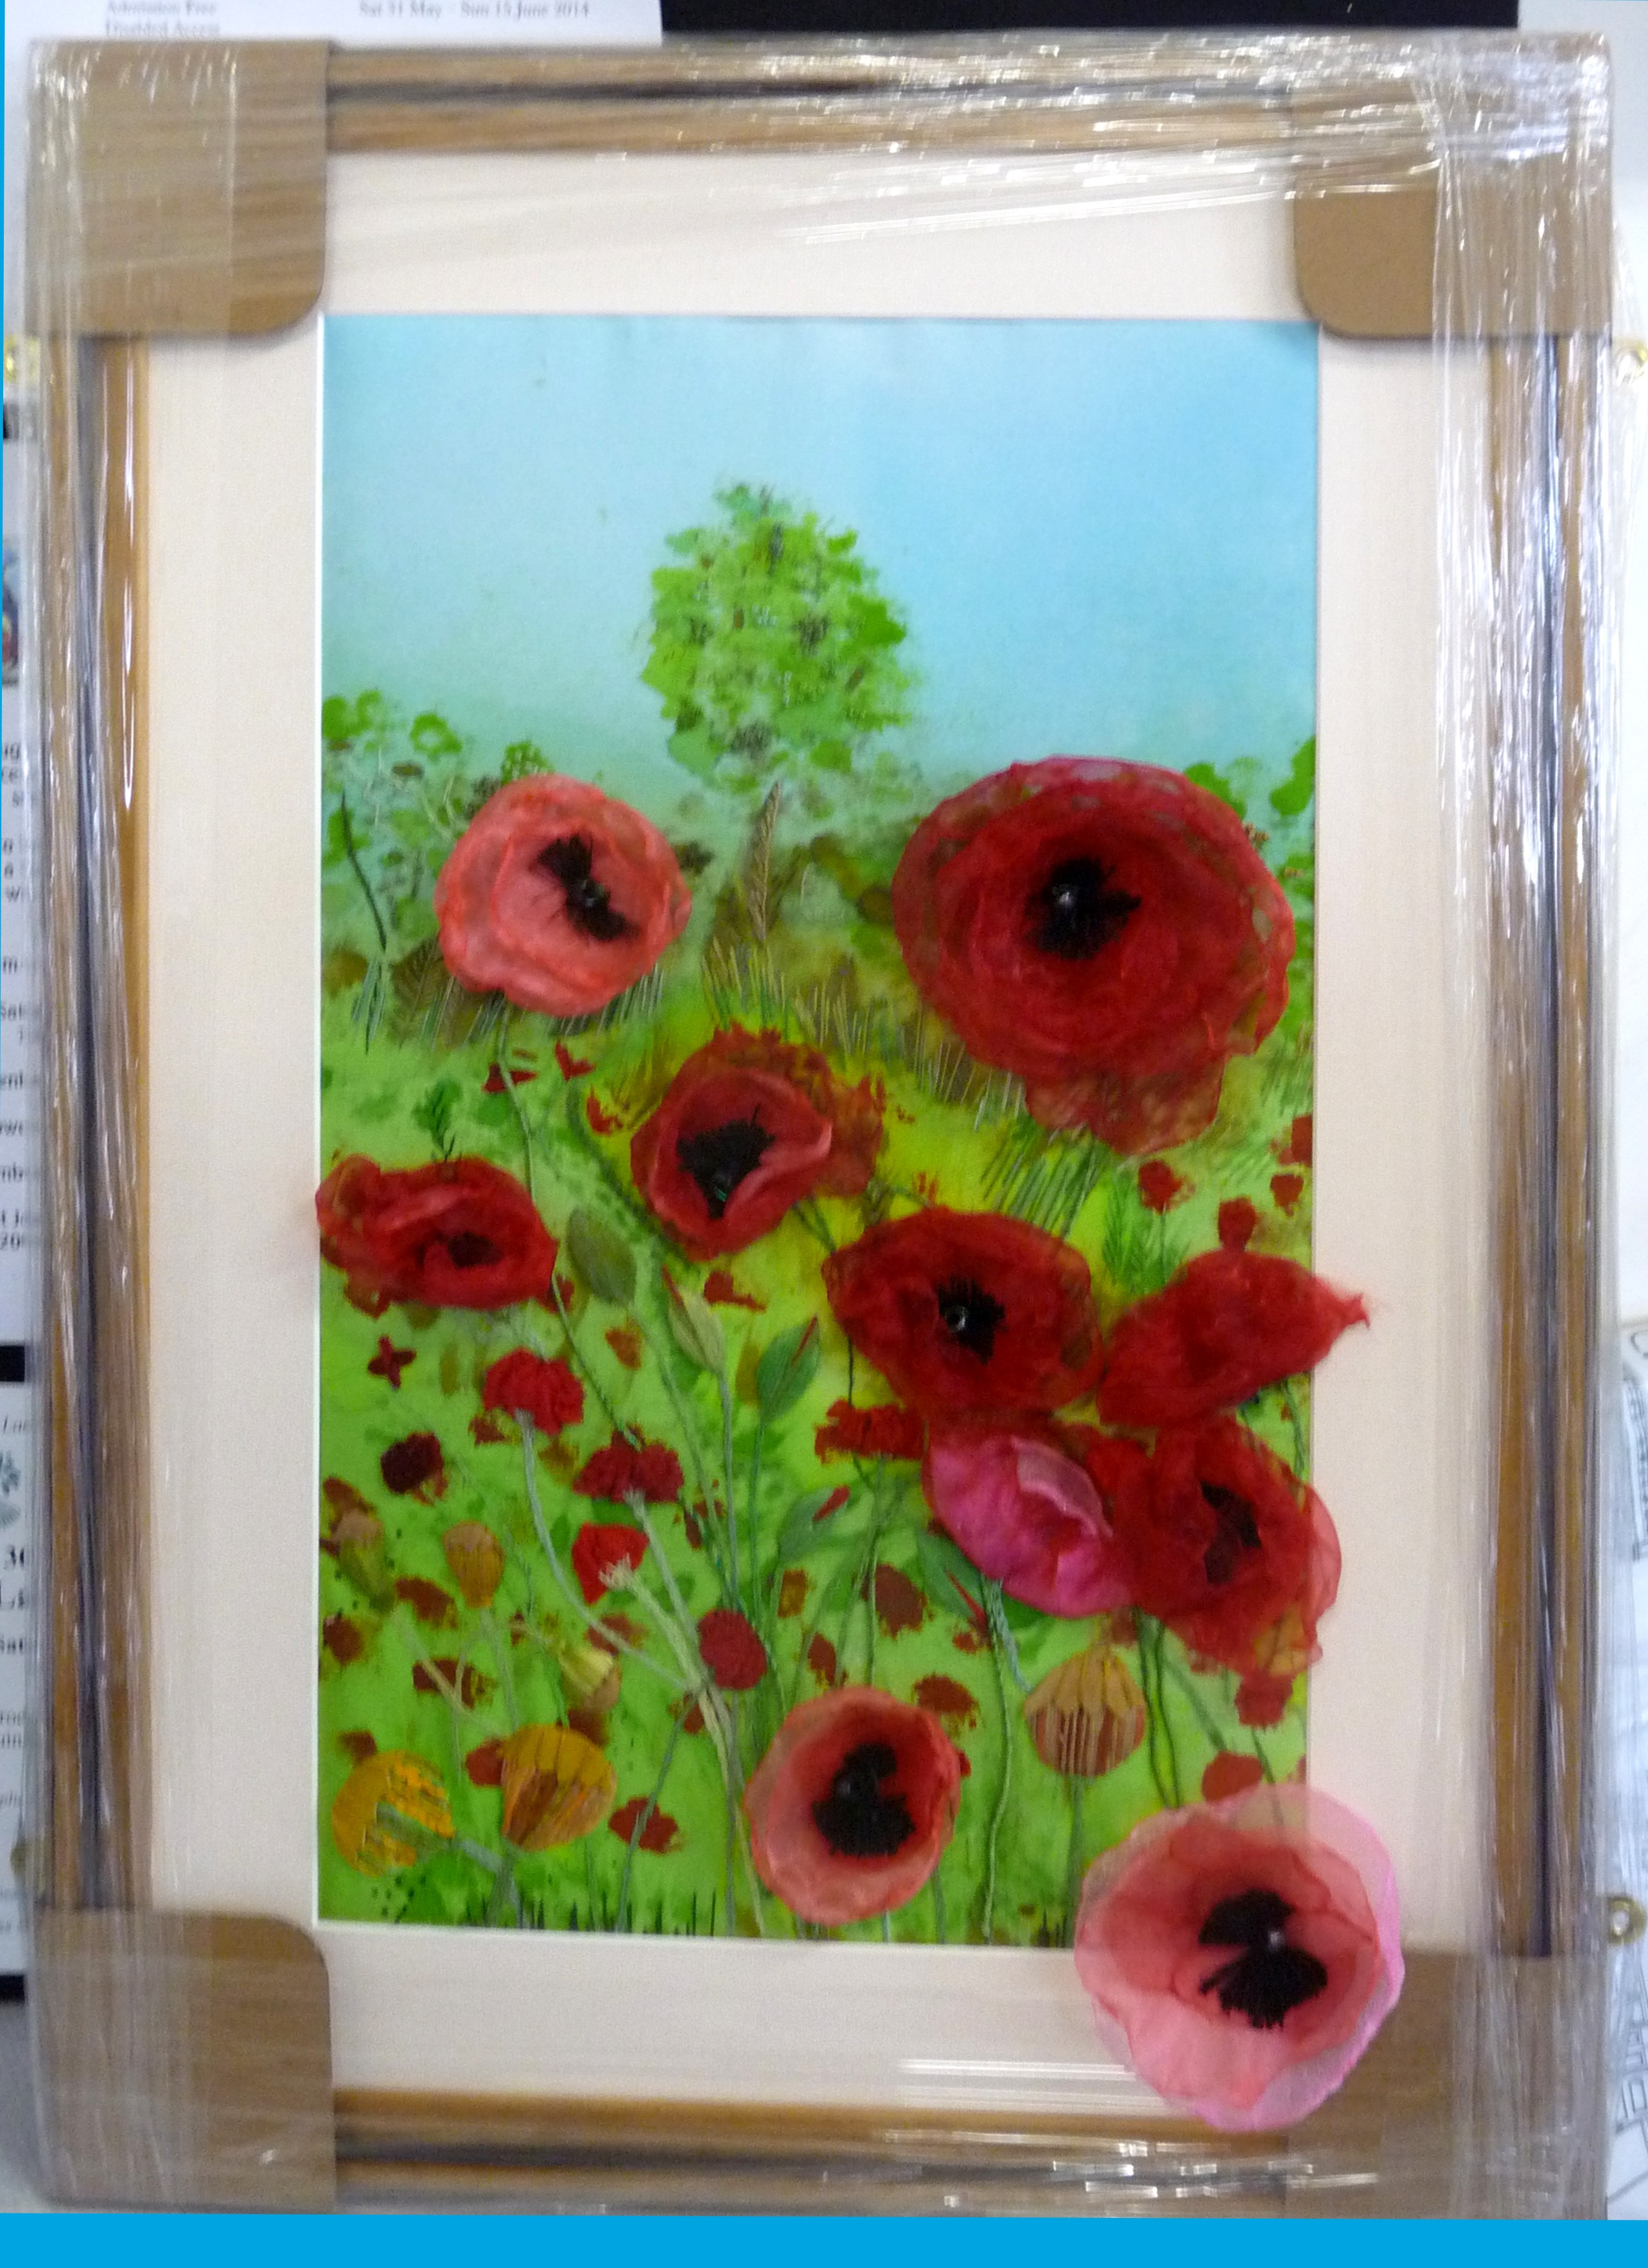 Vicky Williams POPPIES embroidery packed & ready for our exhibition